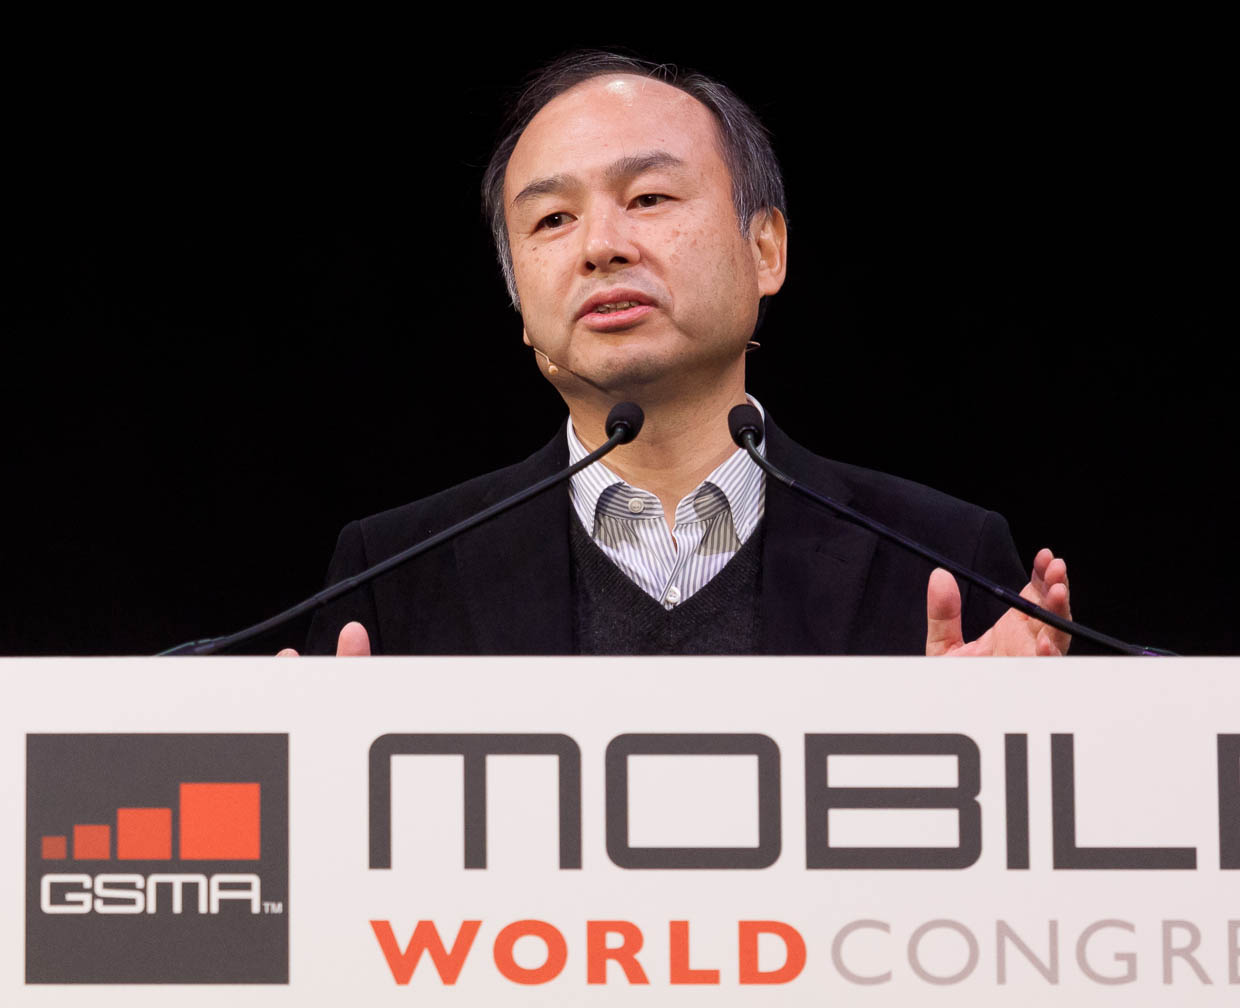 Softbank CEO Masayoshi Son speaking at Mobile World Congress in Barcelona in February 2011.